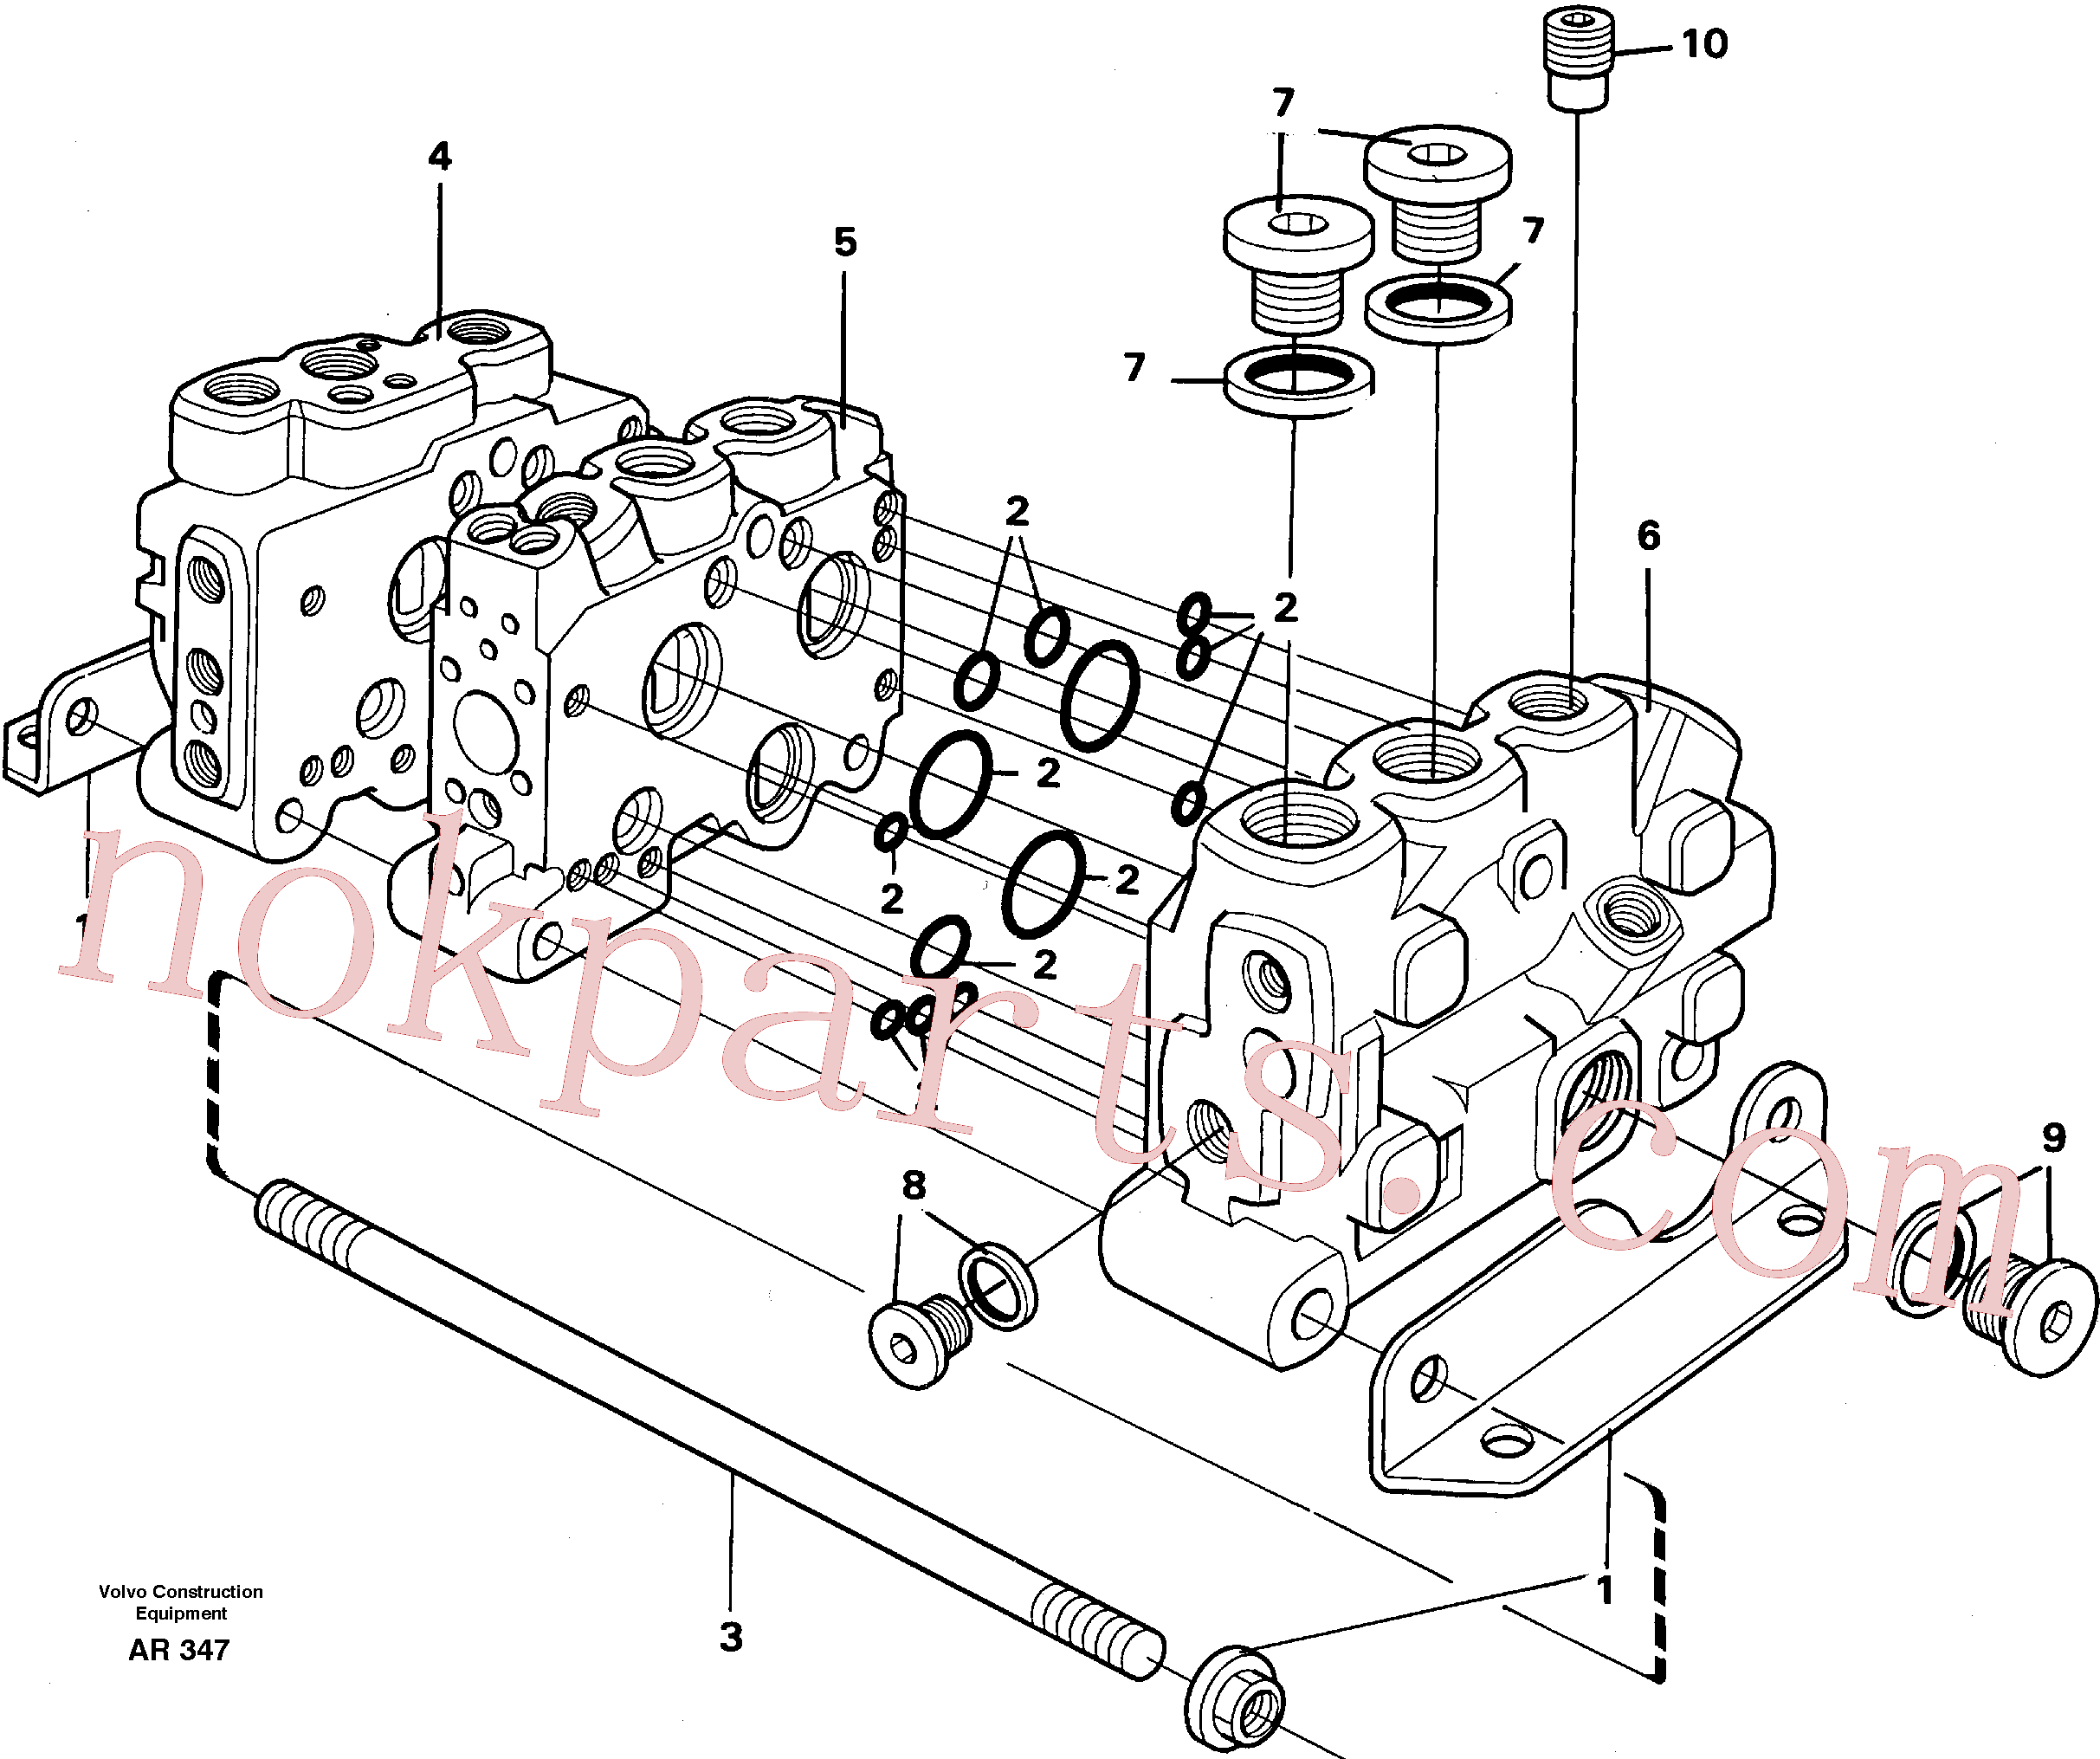 PJ7416644 for Volvo Valve section with assembly parts(AR347 assembly)